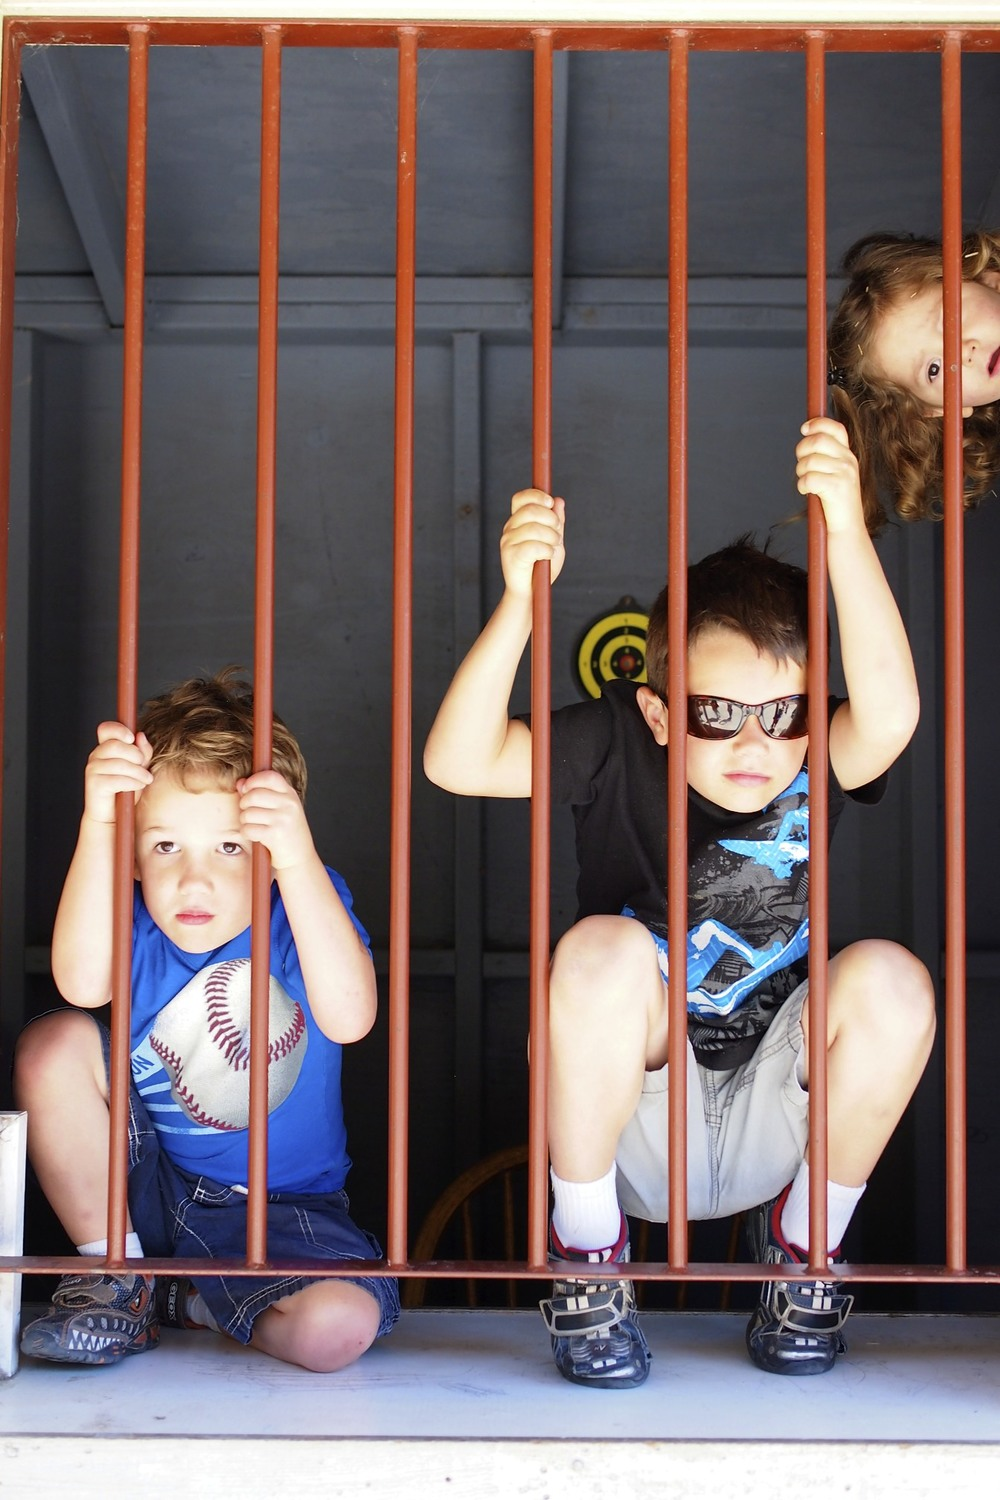 Reid and Rowan trying to bust out of jail.  Can you spot the photo bomber?